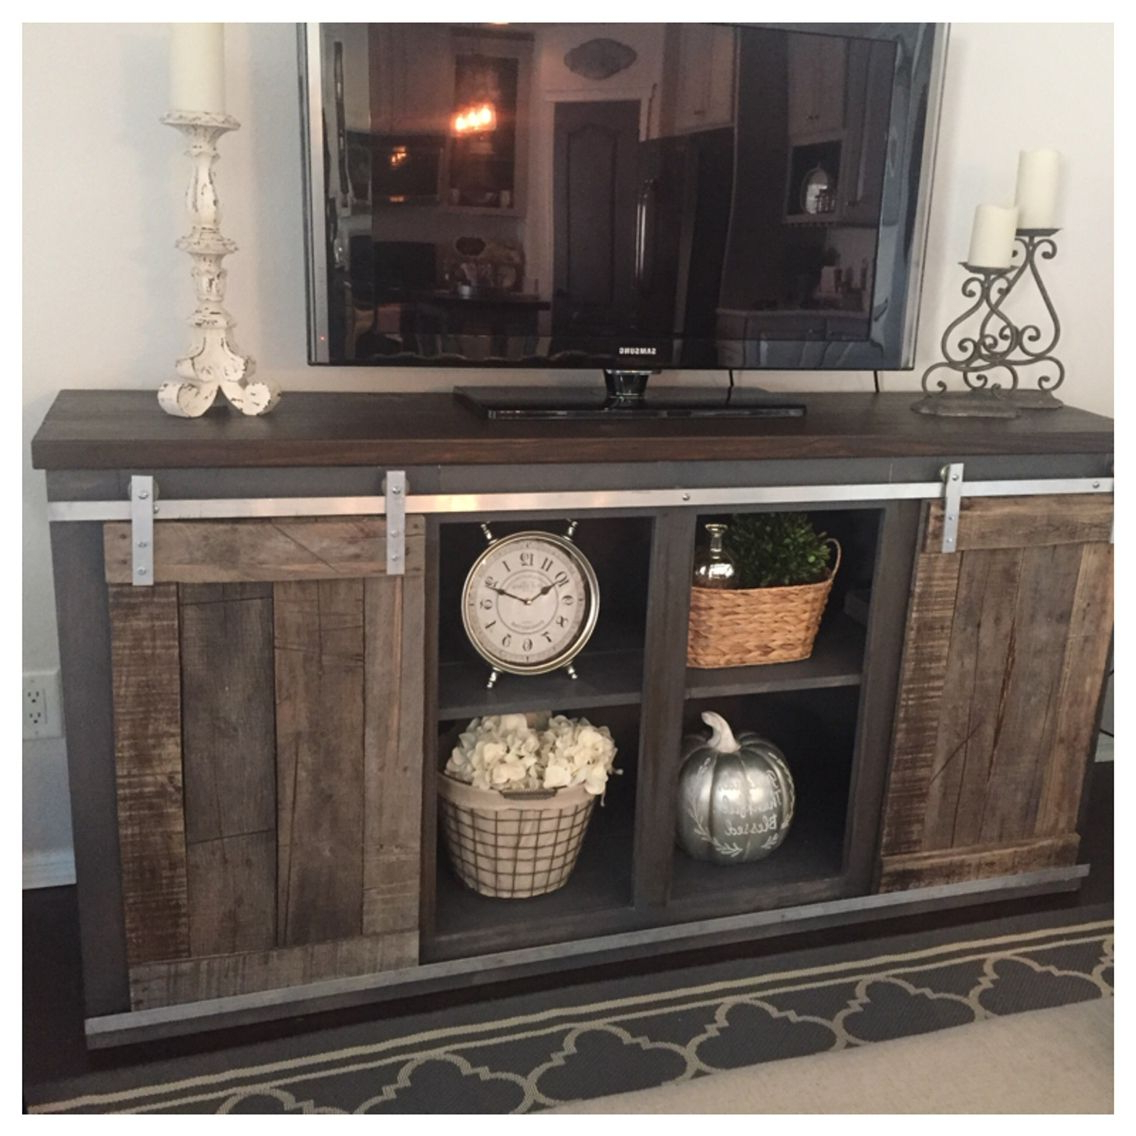 Fashionable Rustic Tv Stands In 17 Diy Entertainment Center Ideas And Designs For Your New Home (View 8 of 20)